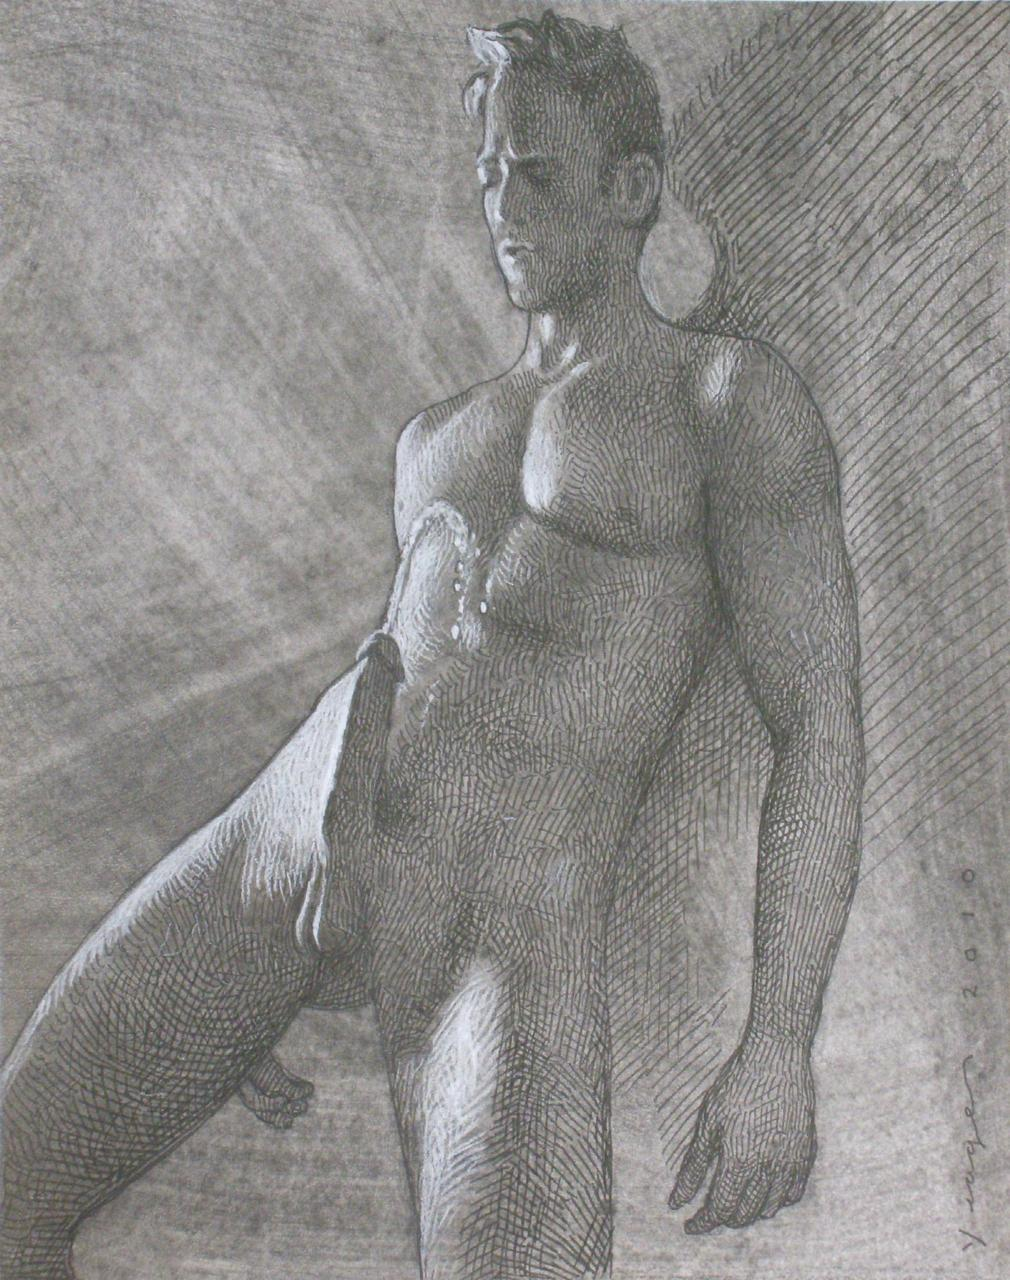 Naked cocks pencil sketches porn picture